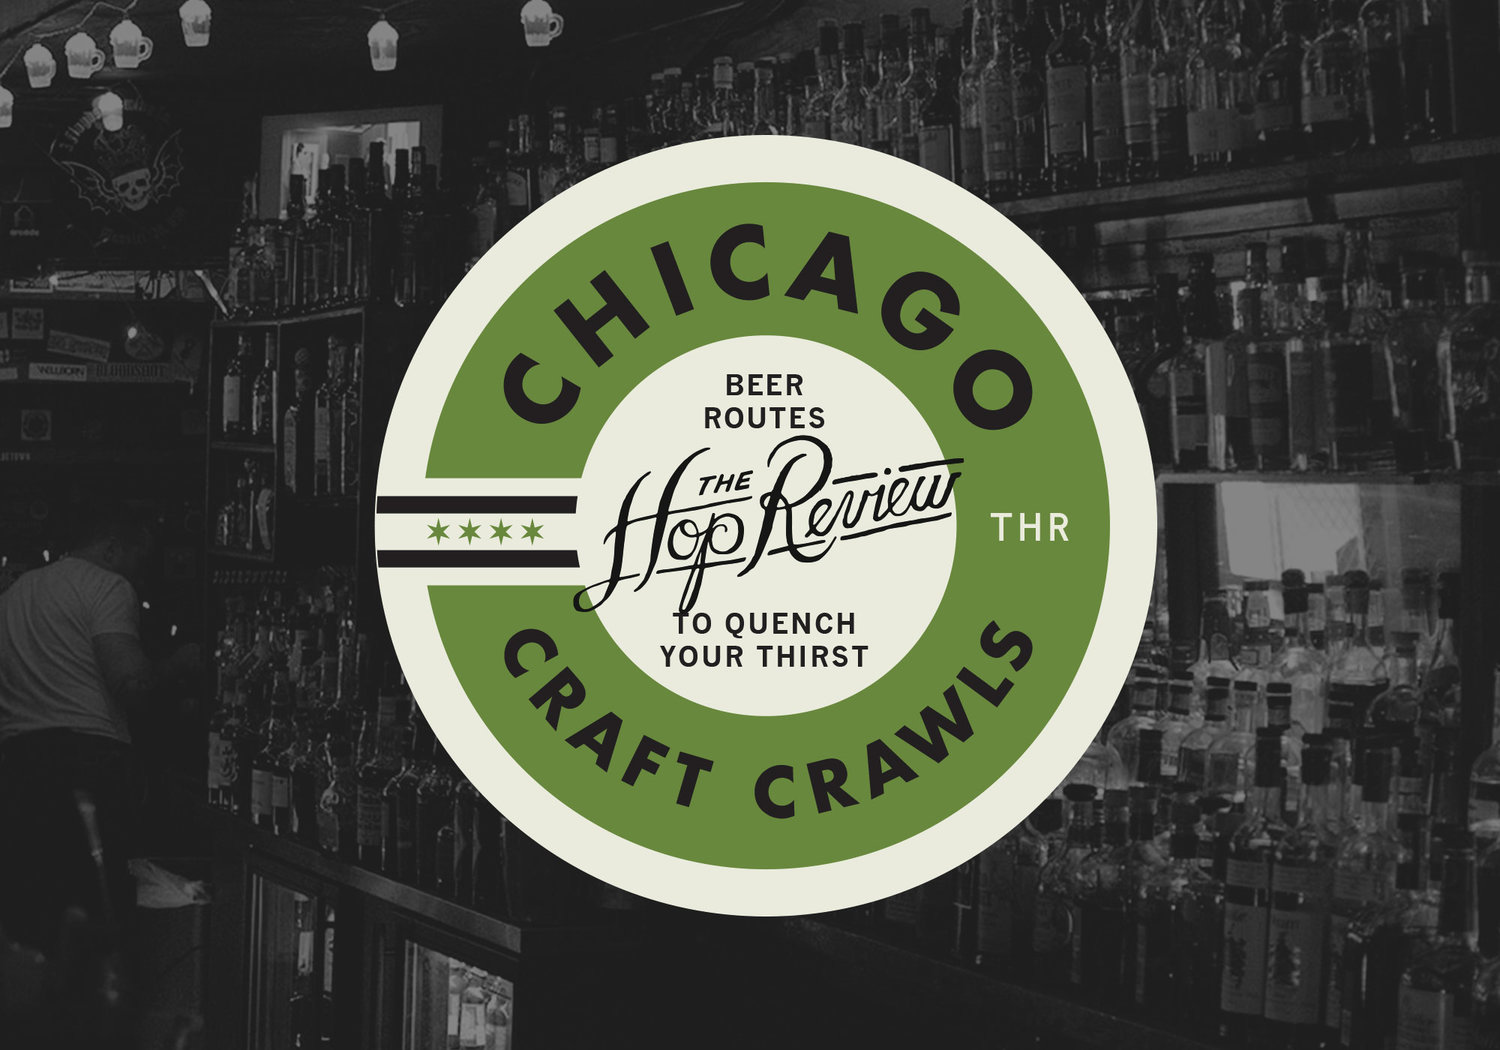 TheHopReview_ChicagoCraftCrawl_0.jpg